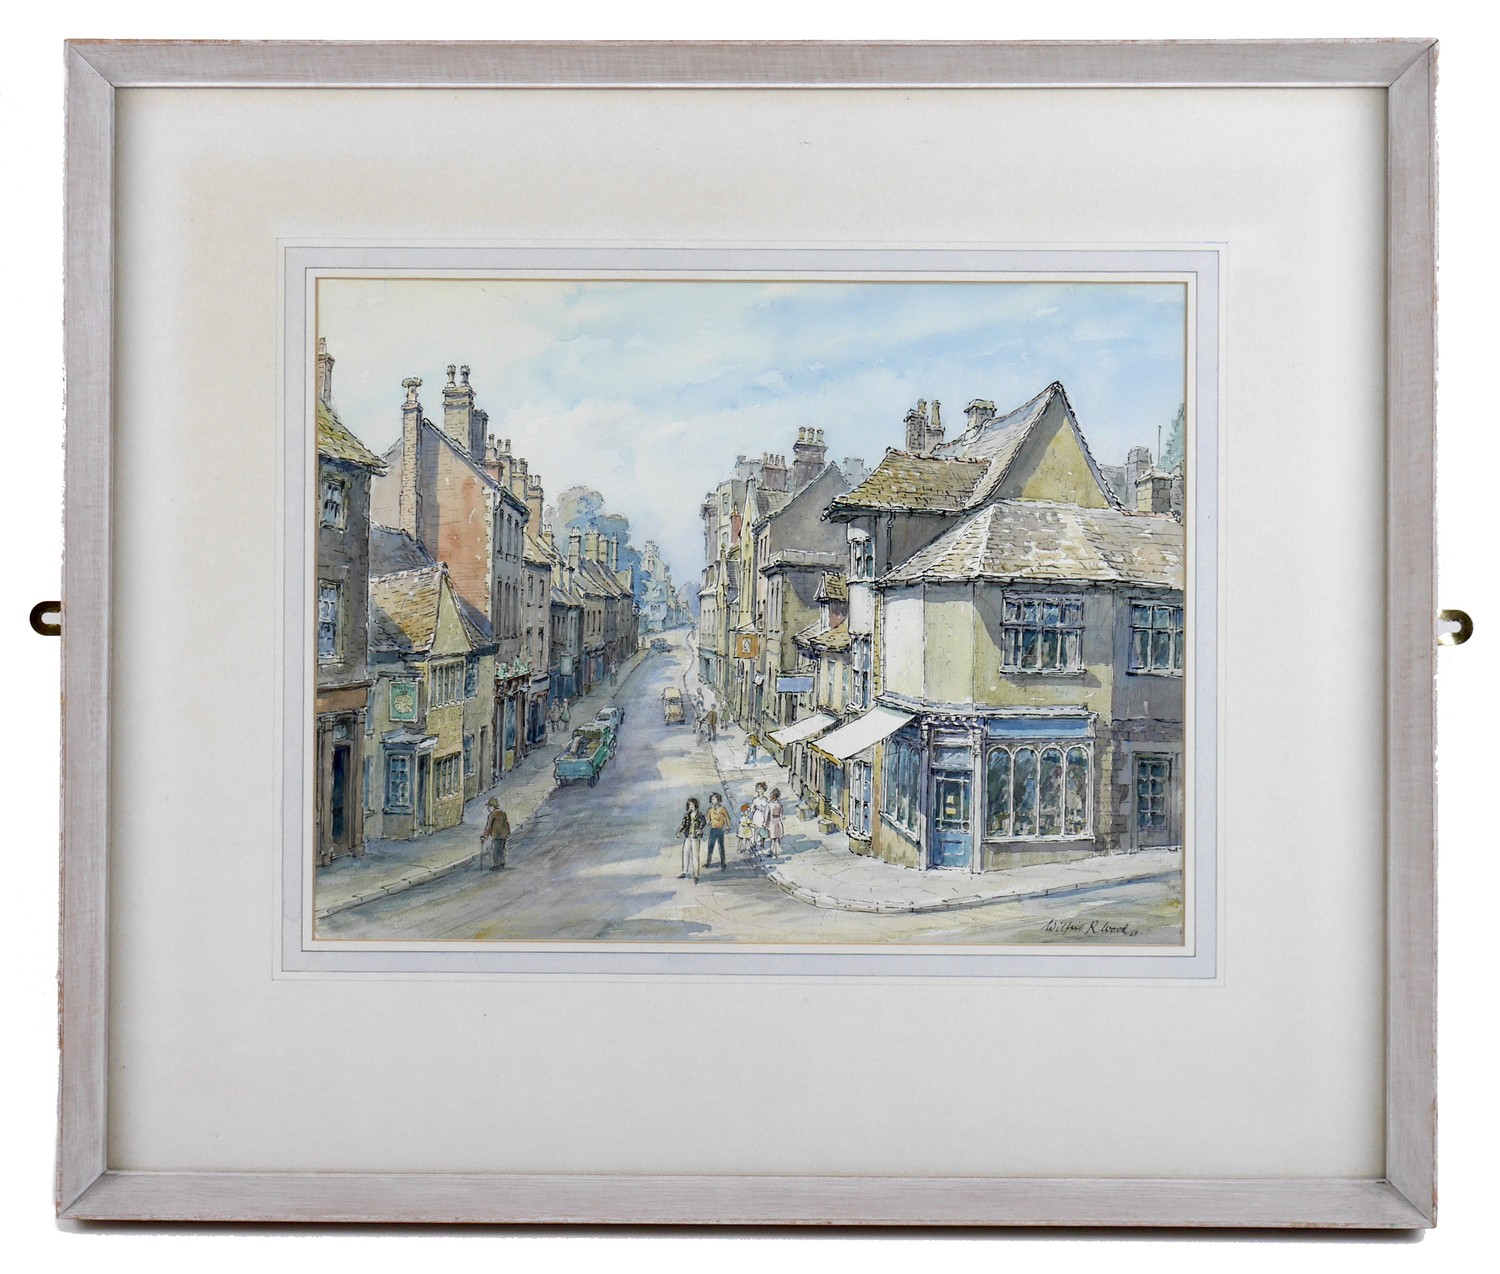 Wilfrid Rene Wood (British, 1888-1976): a view of Stamford, depicting ?All Saints Place? (No 48), - Image 2 of 7